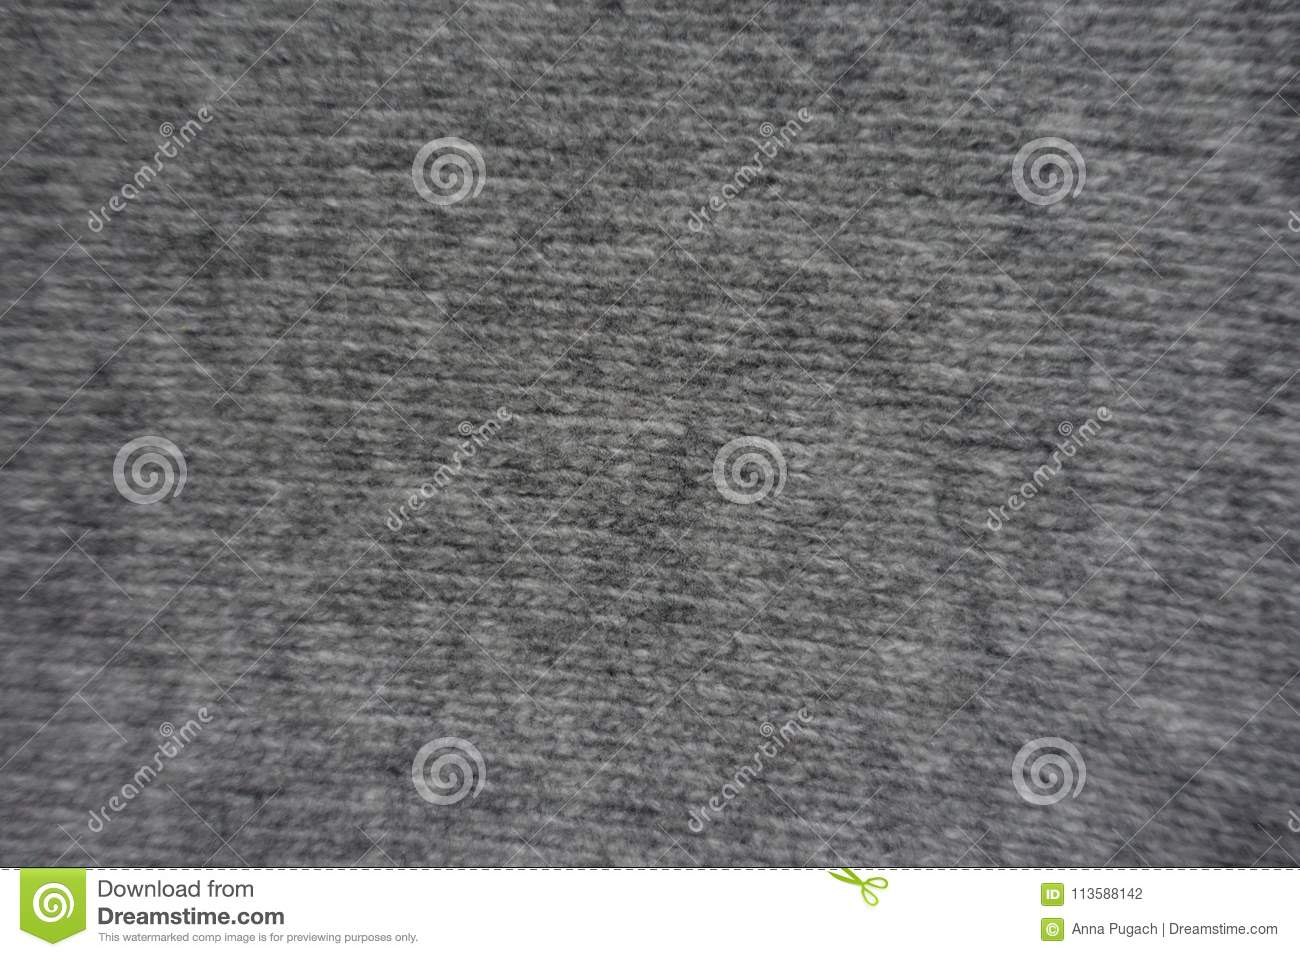 Gray Handmade Stocking Stitch Knitted Fabric From Above Stock Photo